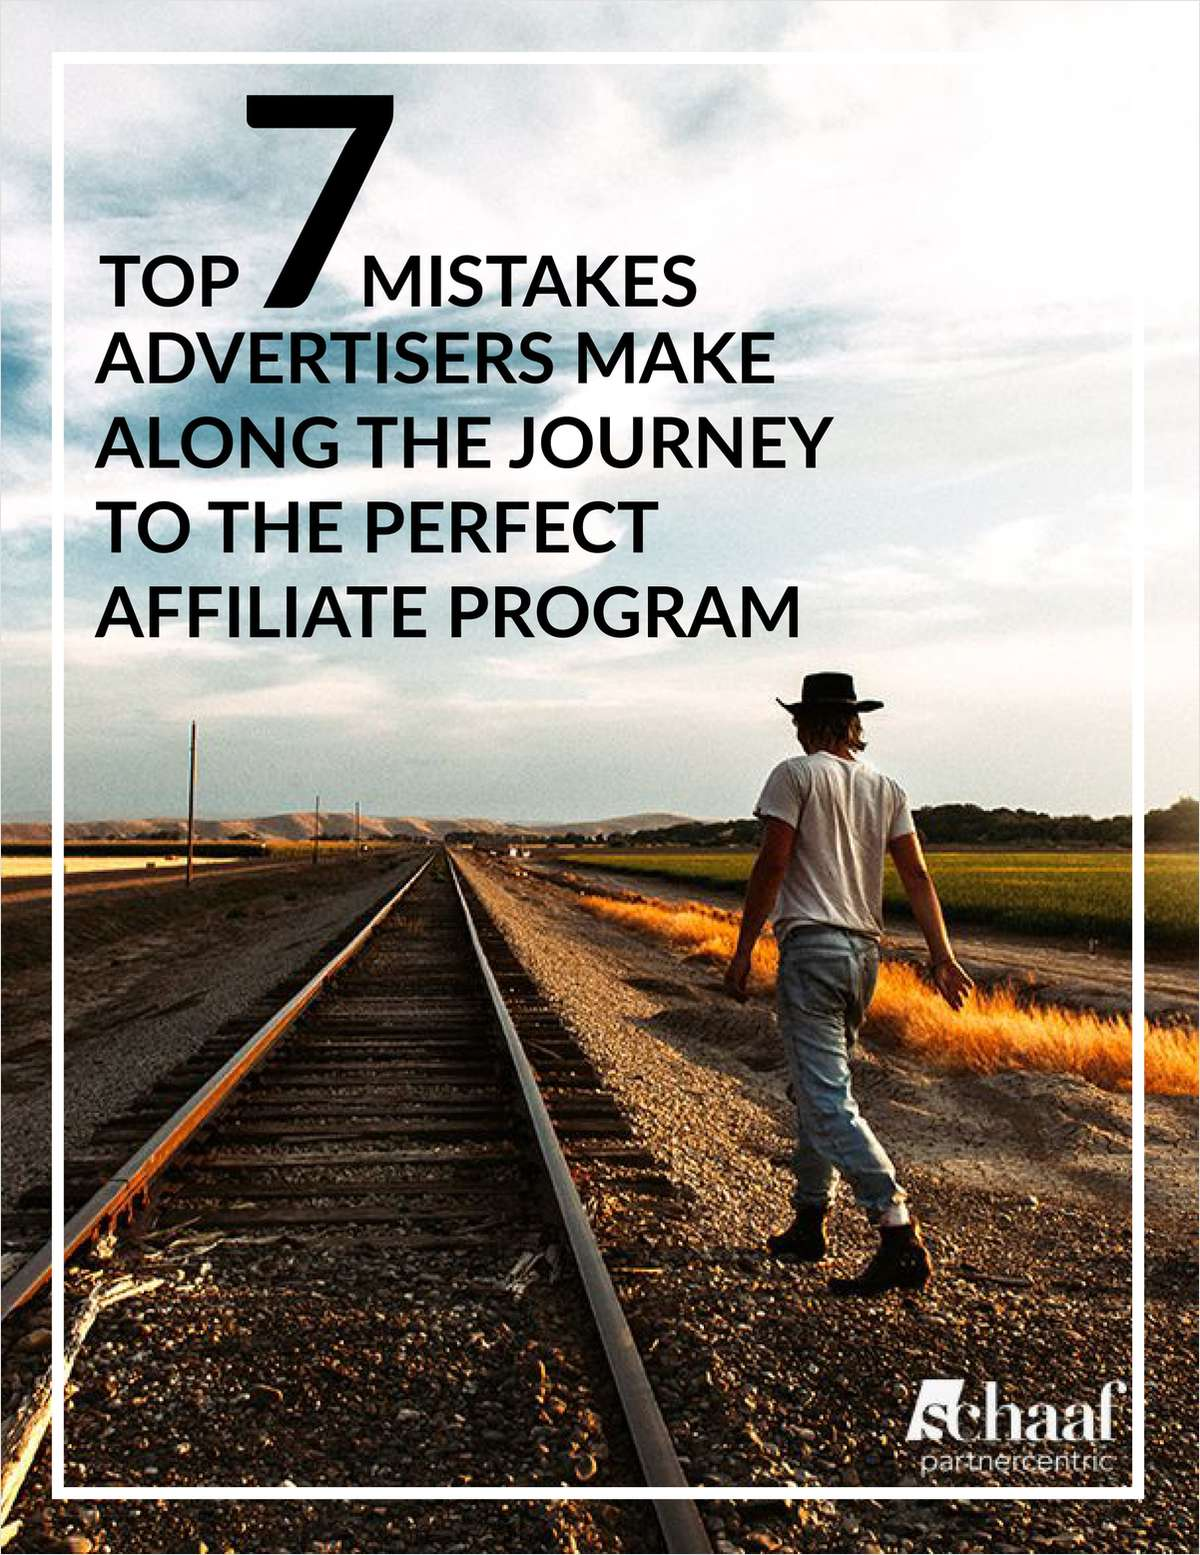 Top 7 Mistakes Advertisers Make Along the Journey to the Perfect Affiliate Program